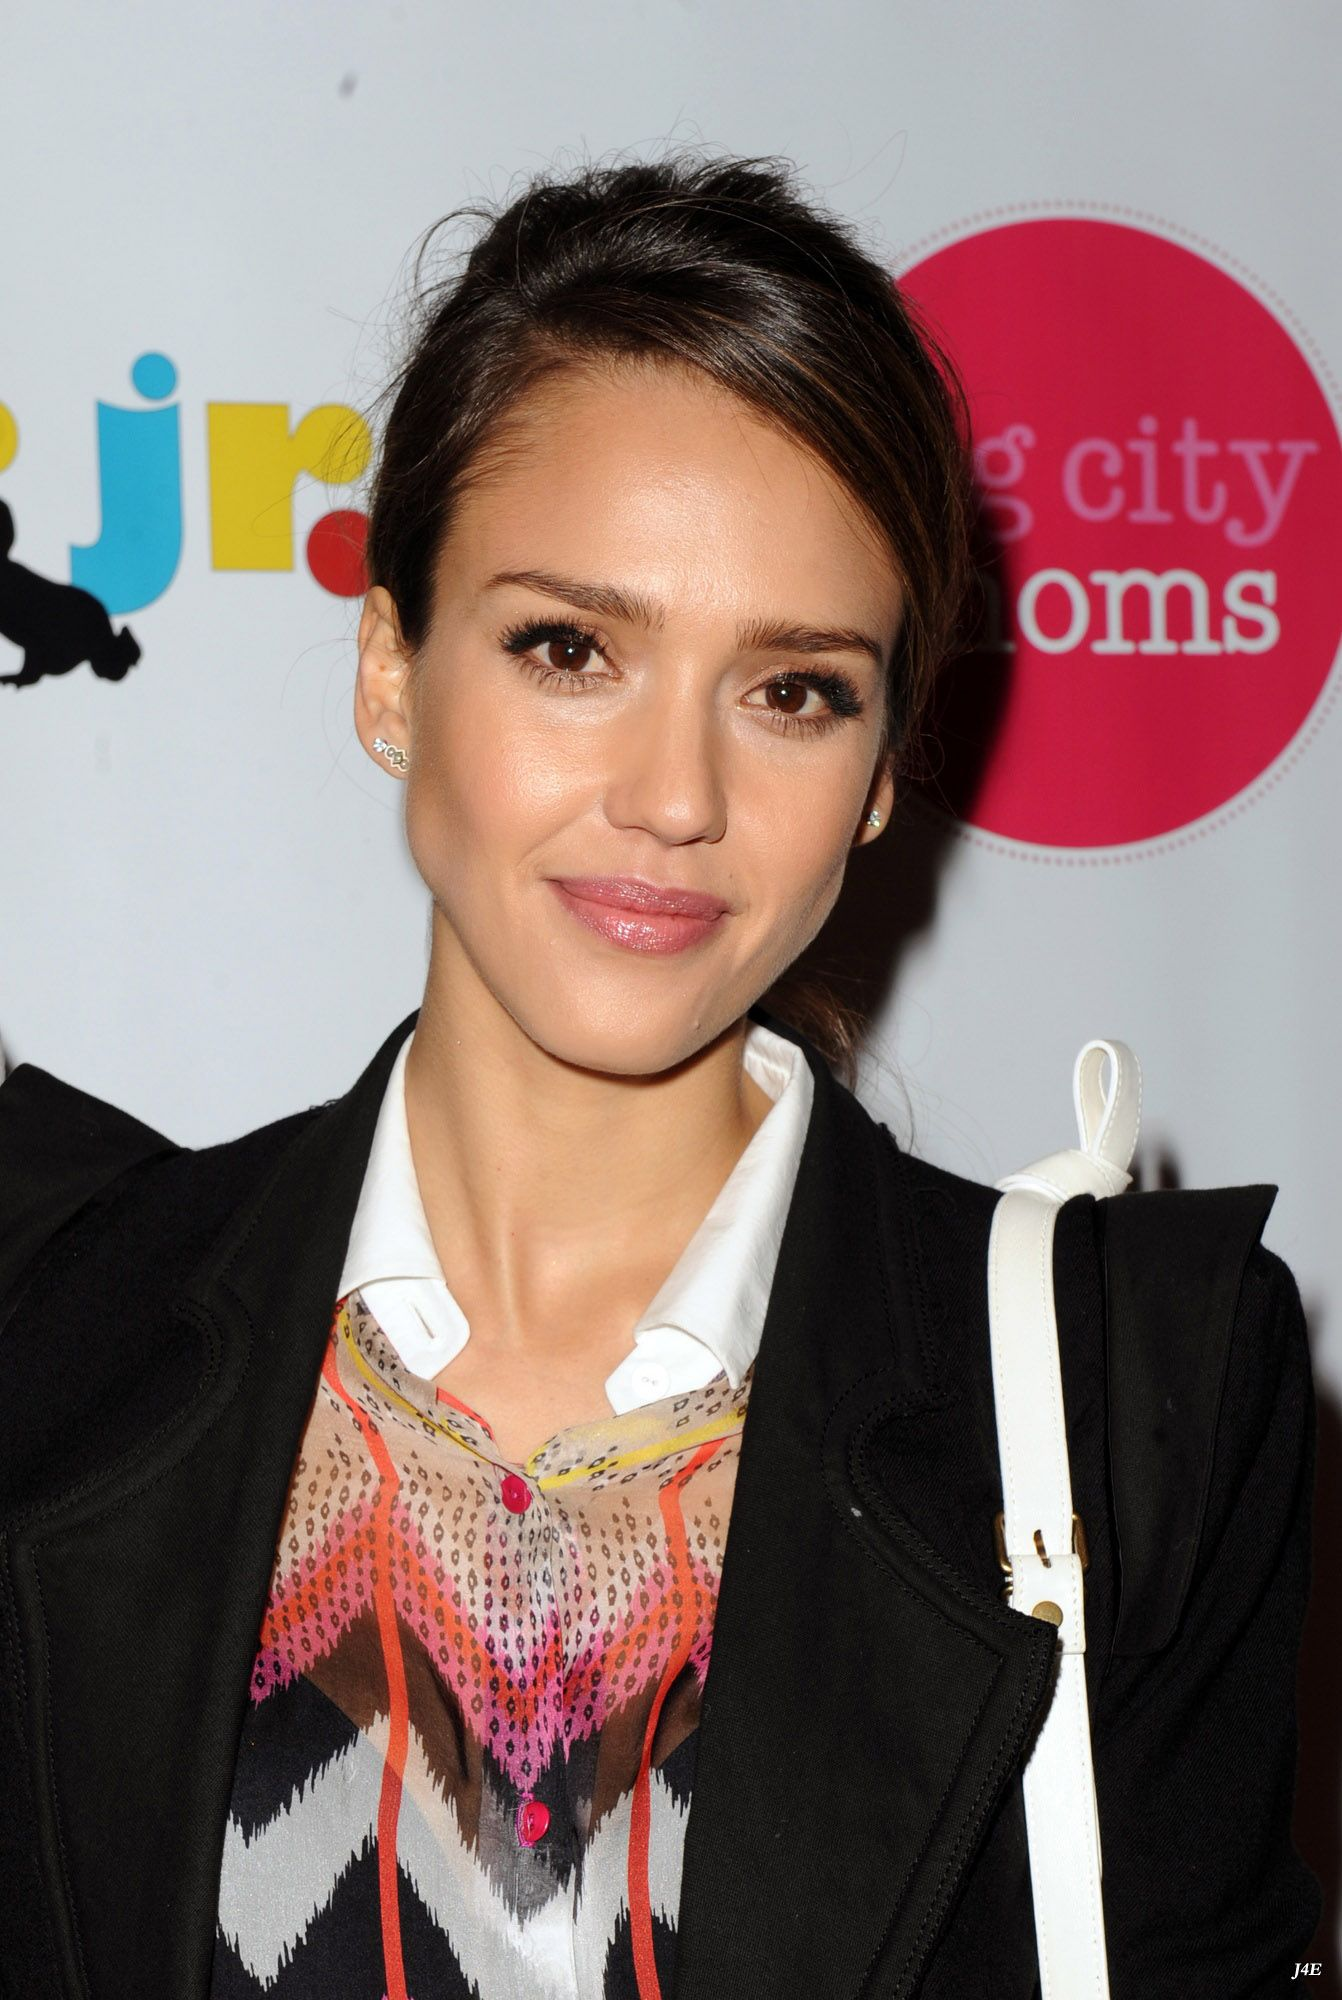 Jessica_Alba_at_The_Biggest_Baby_Shower_Ever_-_May_09_2012_061.jpg Click image to close this window